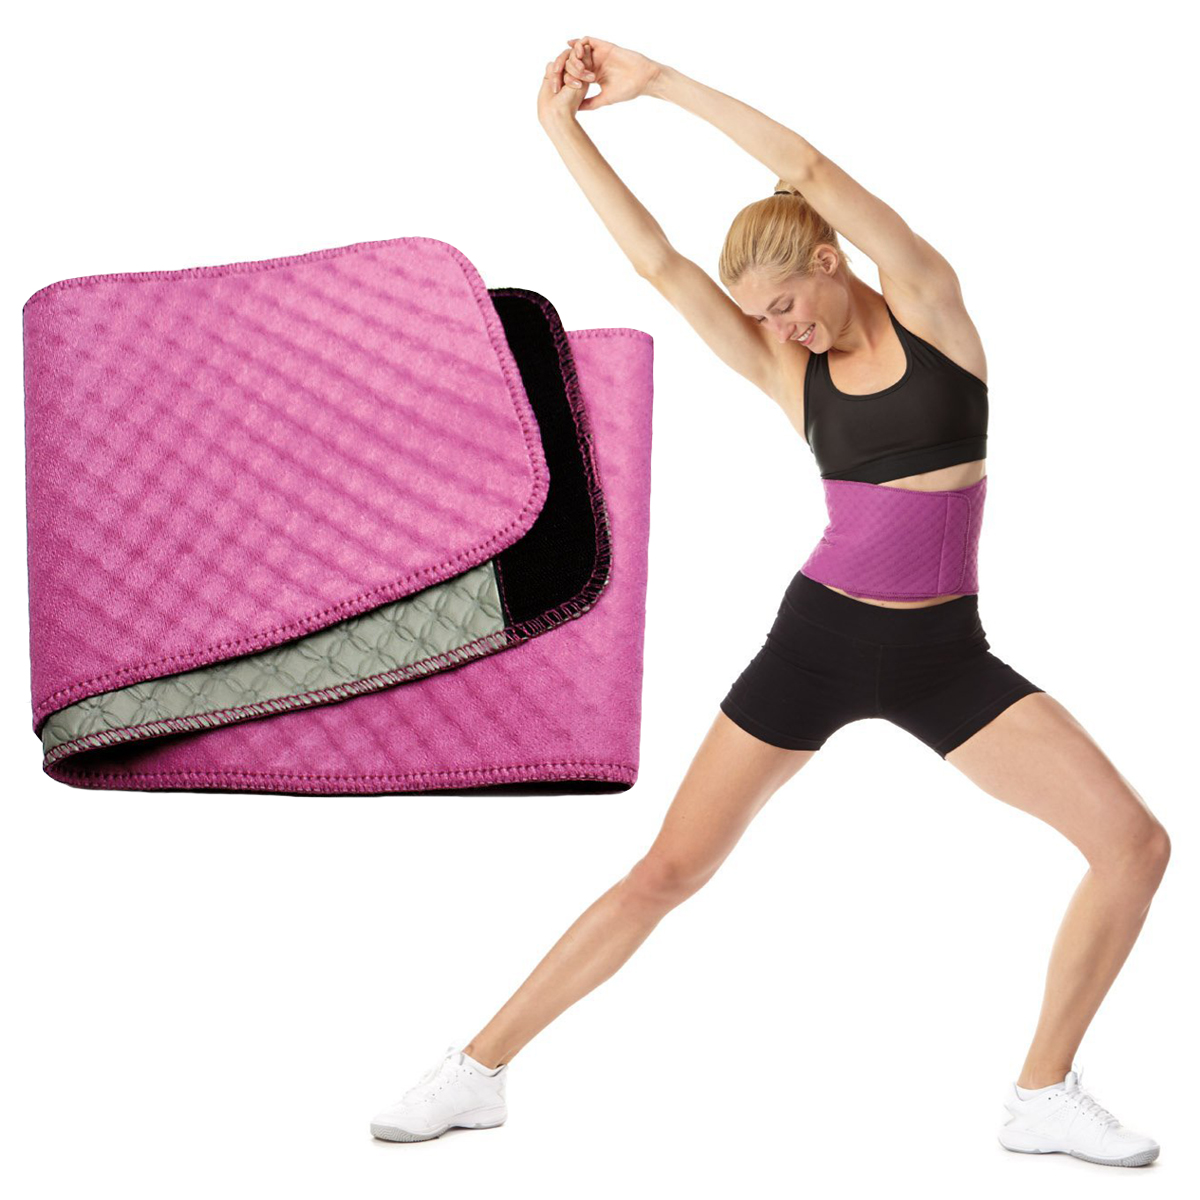 Women's BodyFit Quilted Slimmer Exercise Belt By Sports Authority Waist Trimmer Weight Loss